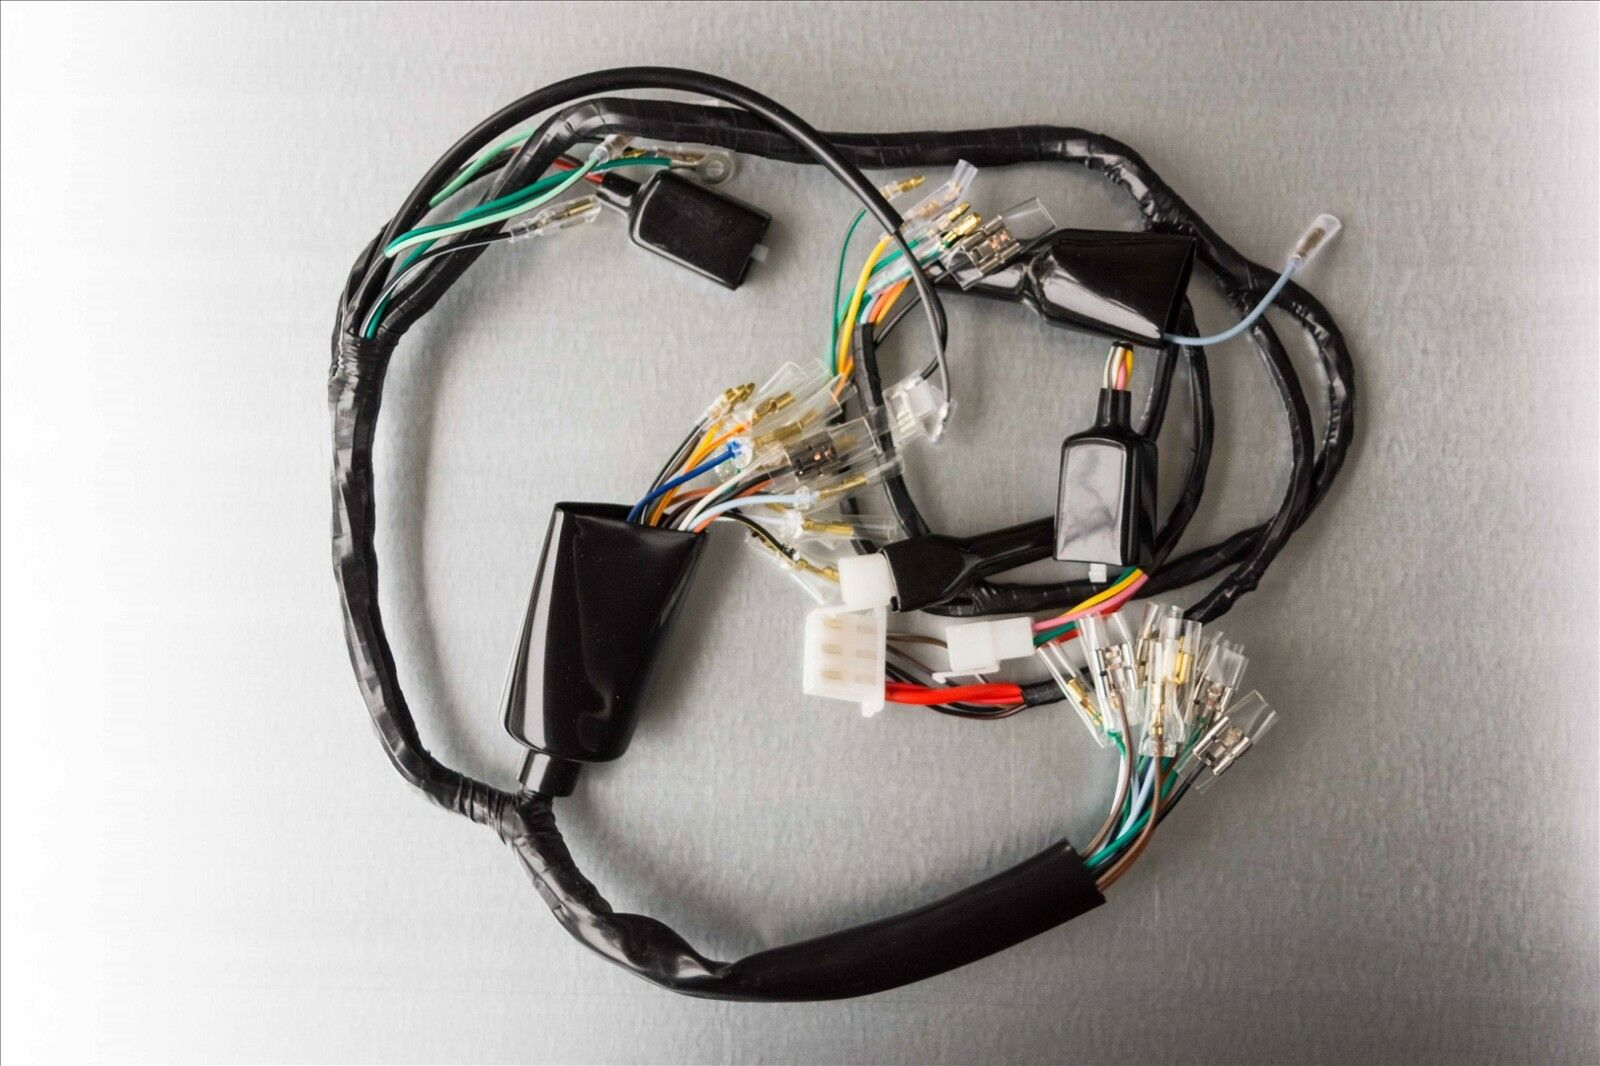 75 Honda Cb360 CB 360 OEM Wire Harness Wiring Loom Electrical on amp bypass harness, alpine stereo harness, cable harness, nakamichi harness, oxygen sensor extension harness, maxi-seal harness, radio harness, engine harness, obd0 to obd1 conversion harness, battery harness, dog harness, safety harness, fall protection harness, pet harness, pony harness, electrical harness, suspension harness,